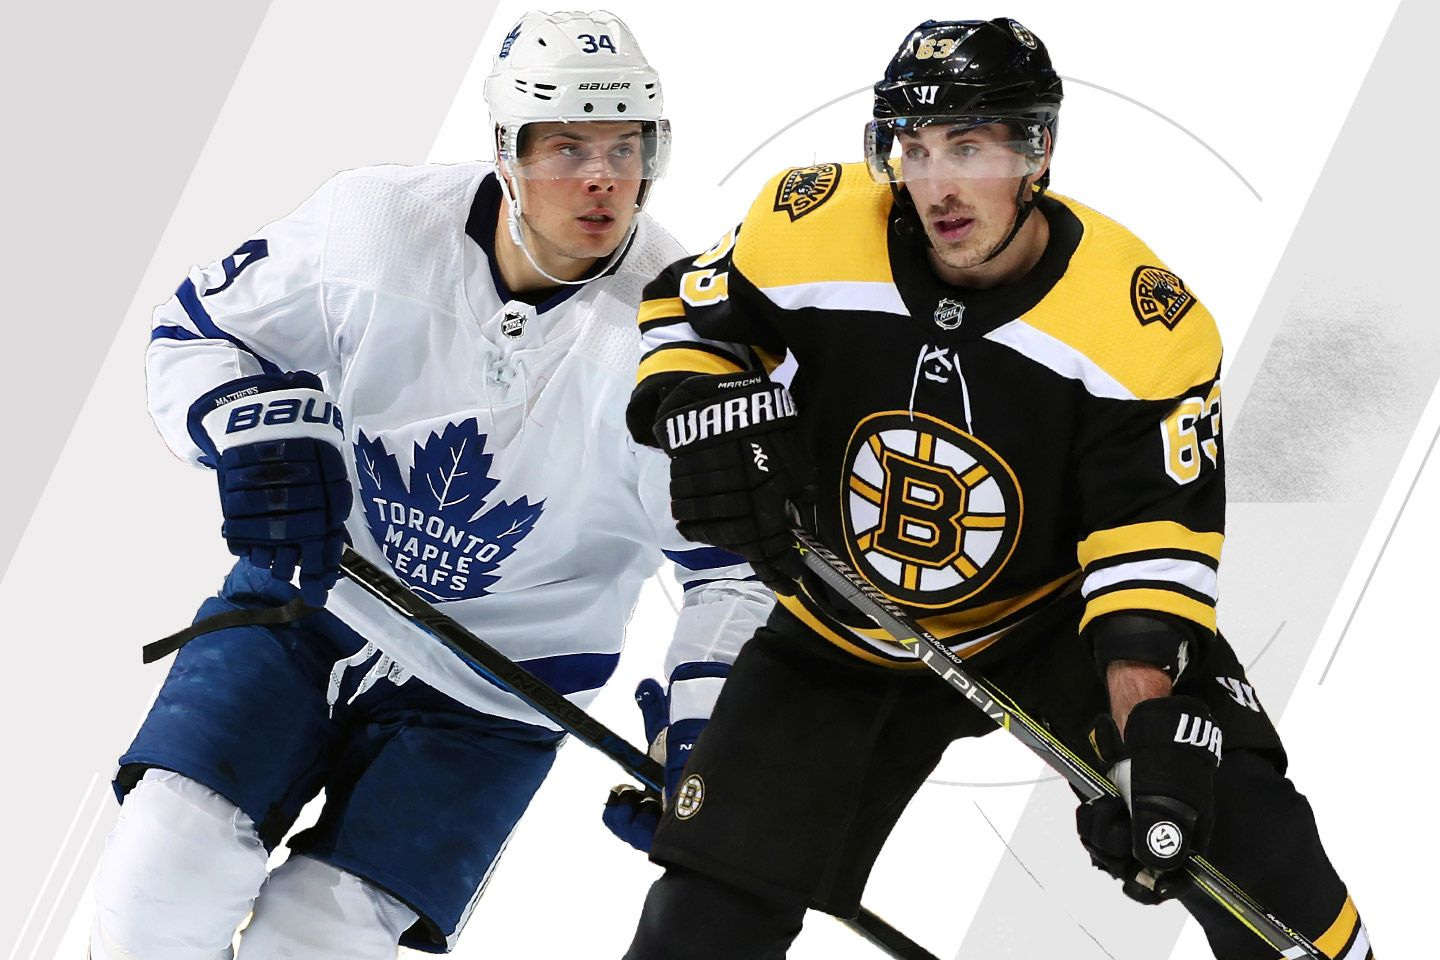 7376c3639b8 2018 Stanley Cup Playoffs - Boston Bruins vs. Toronto Maple Leafs preview